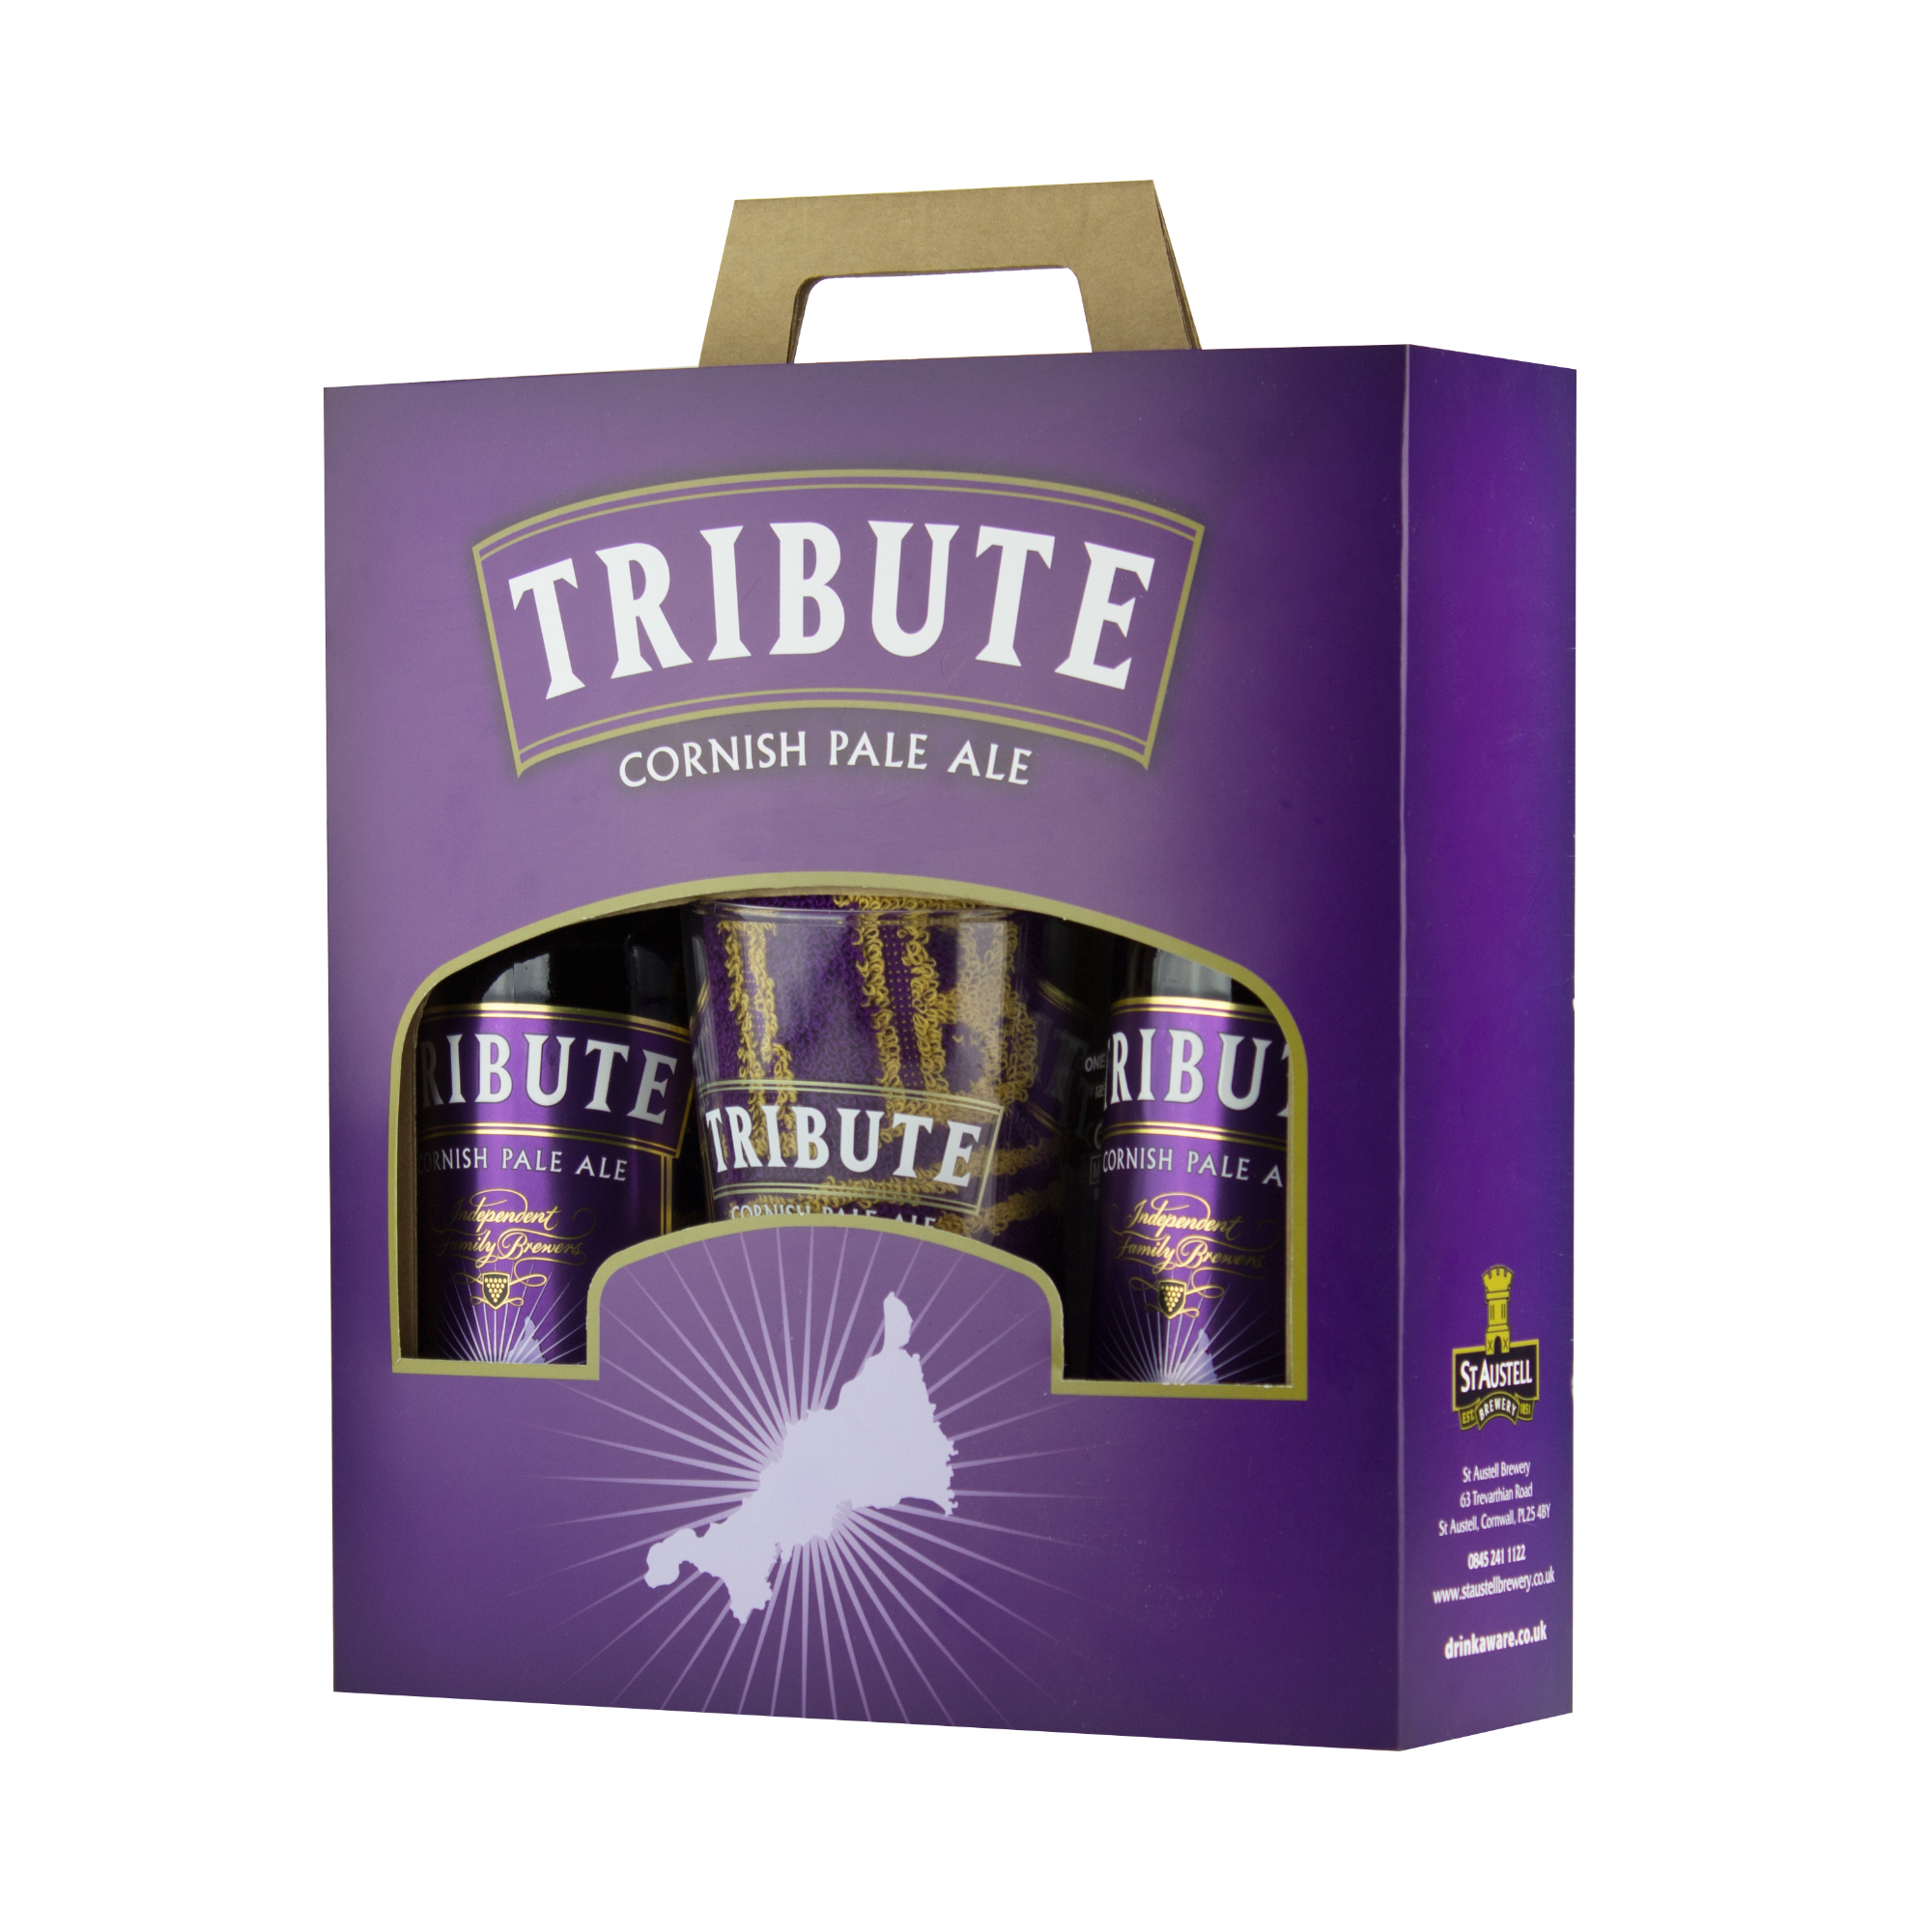 Tribute glass and bottles gift pack